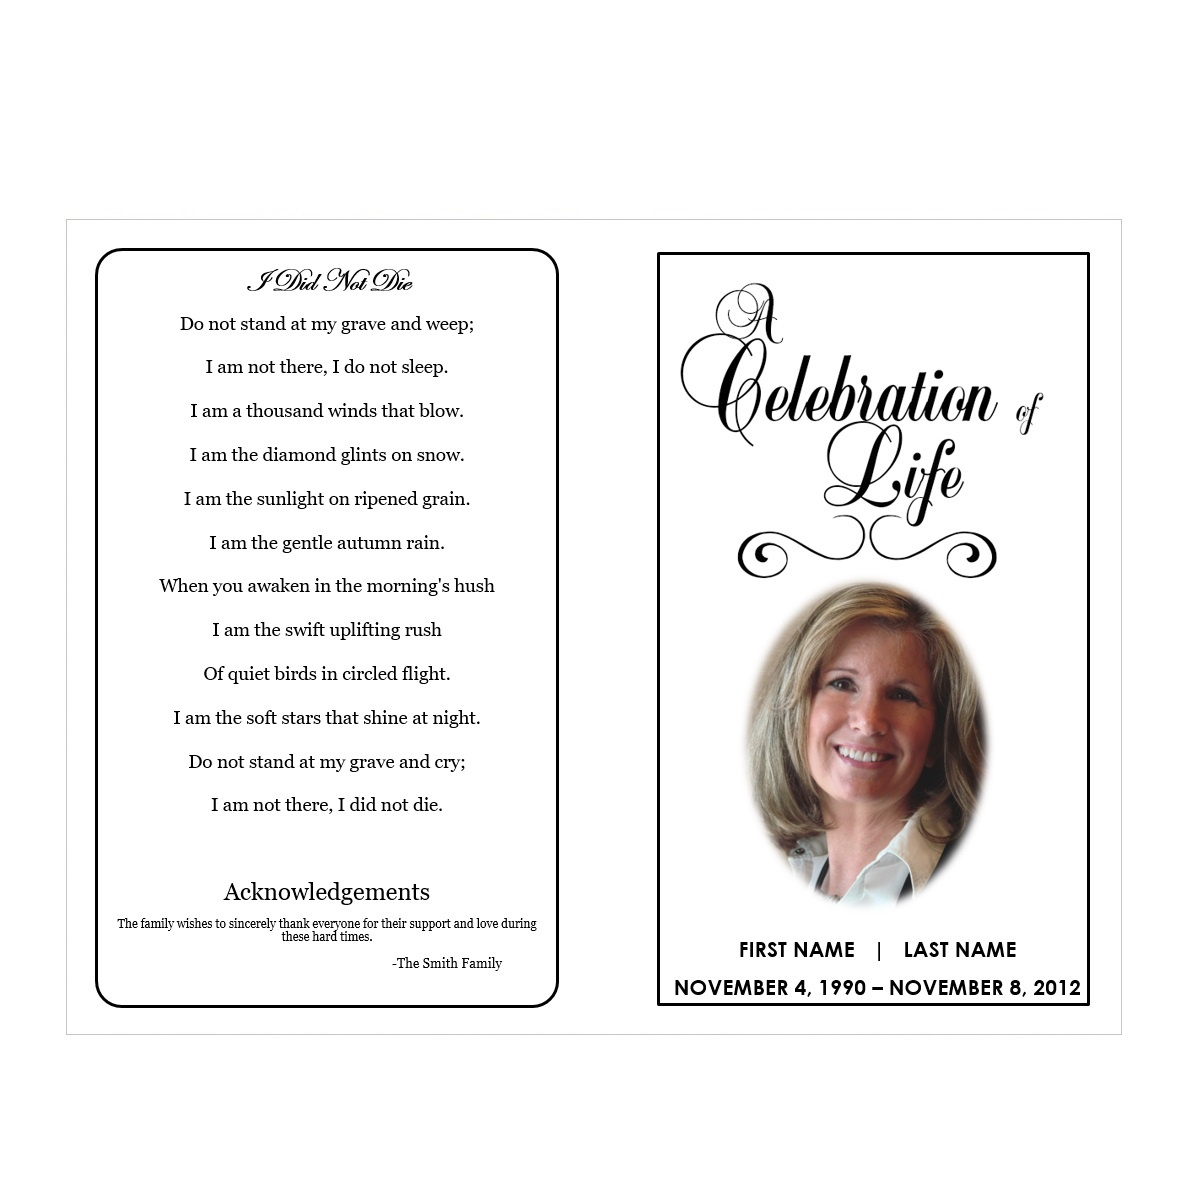 004 Traditional1 Blank Funeral Program Template Frightening Ideas - Free Printable Funeral Programs